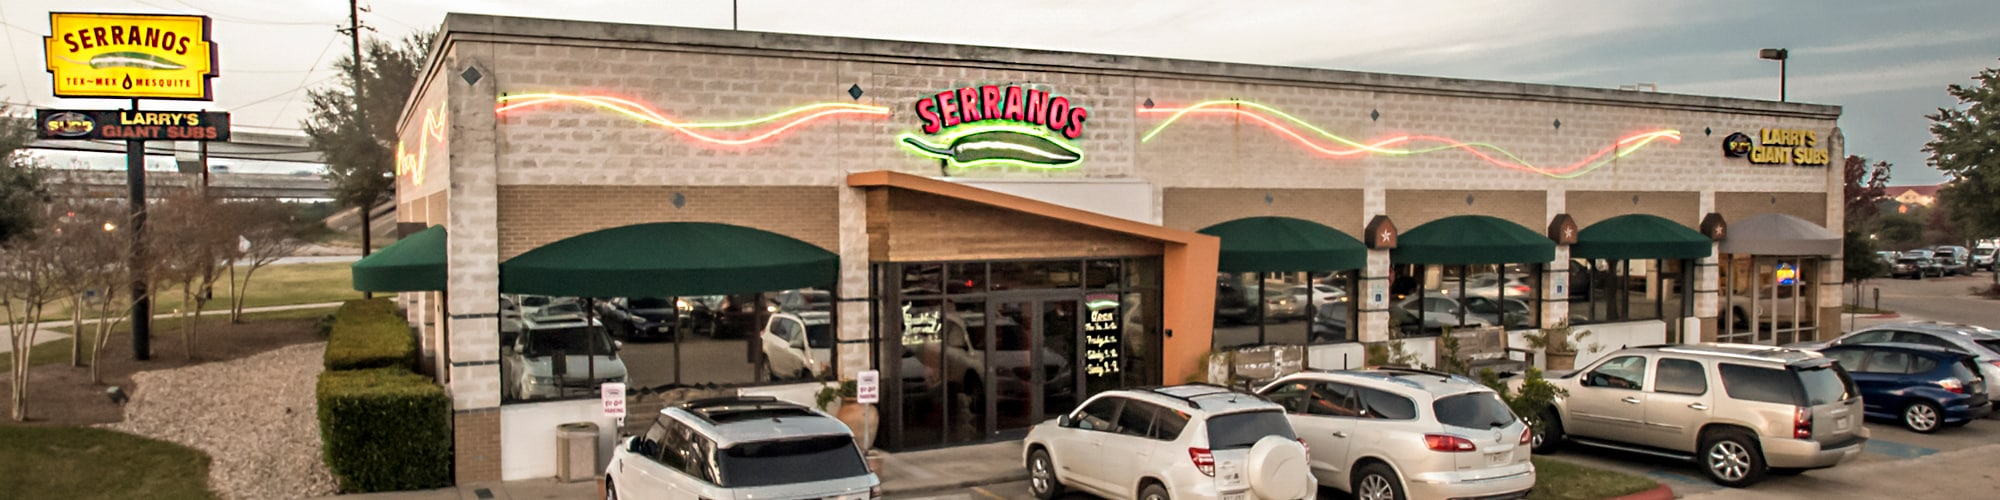 Serrano's at South Towne Square | 4970 US-290 West in Austin, Texas